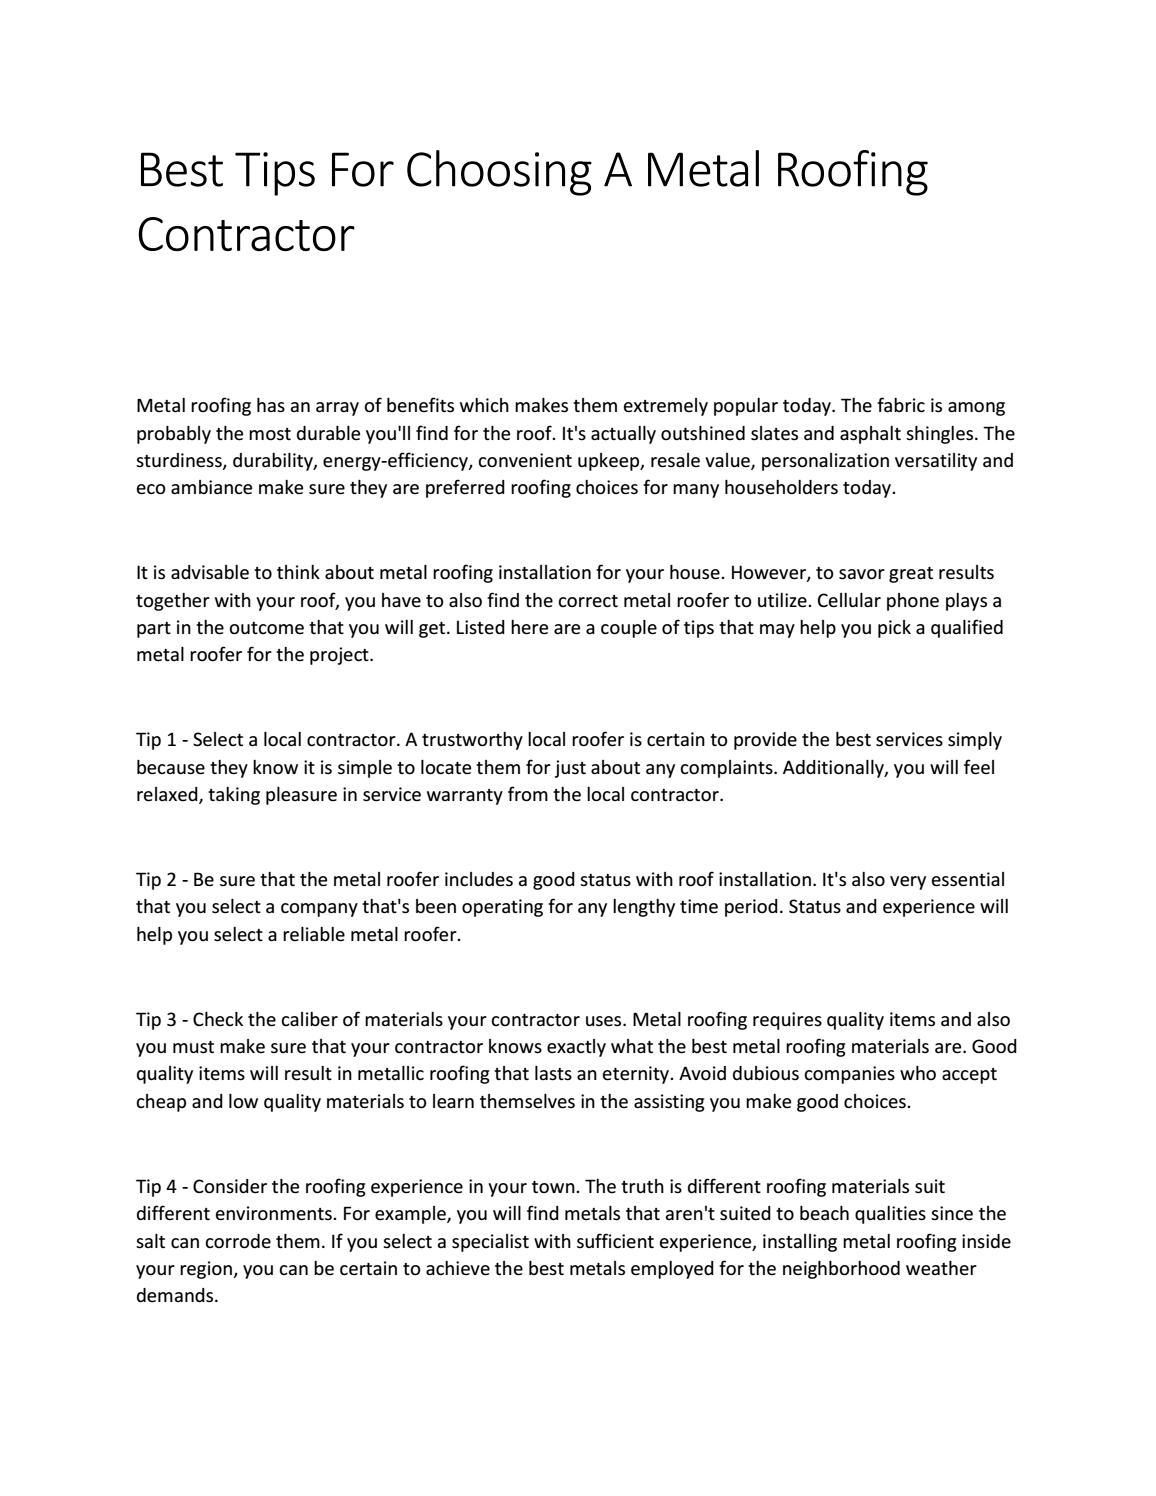 Best Tips For Choosing A Metal Roofing Contractor By Nadia Javaid Issuu